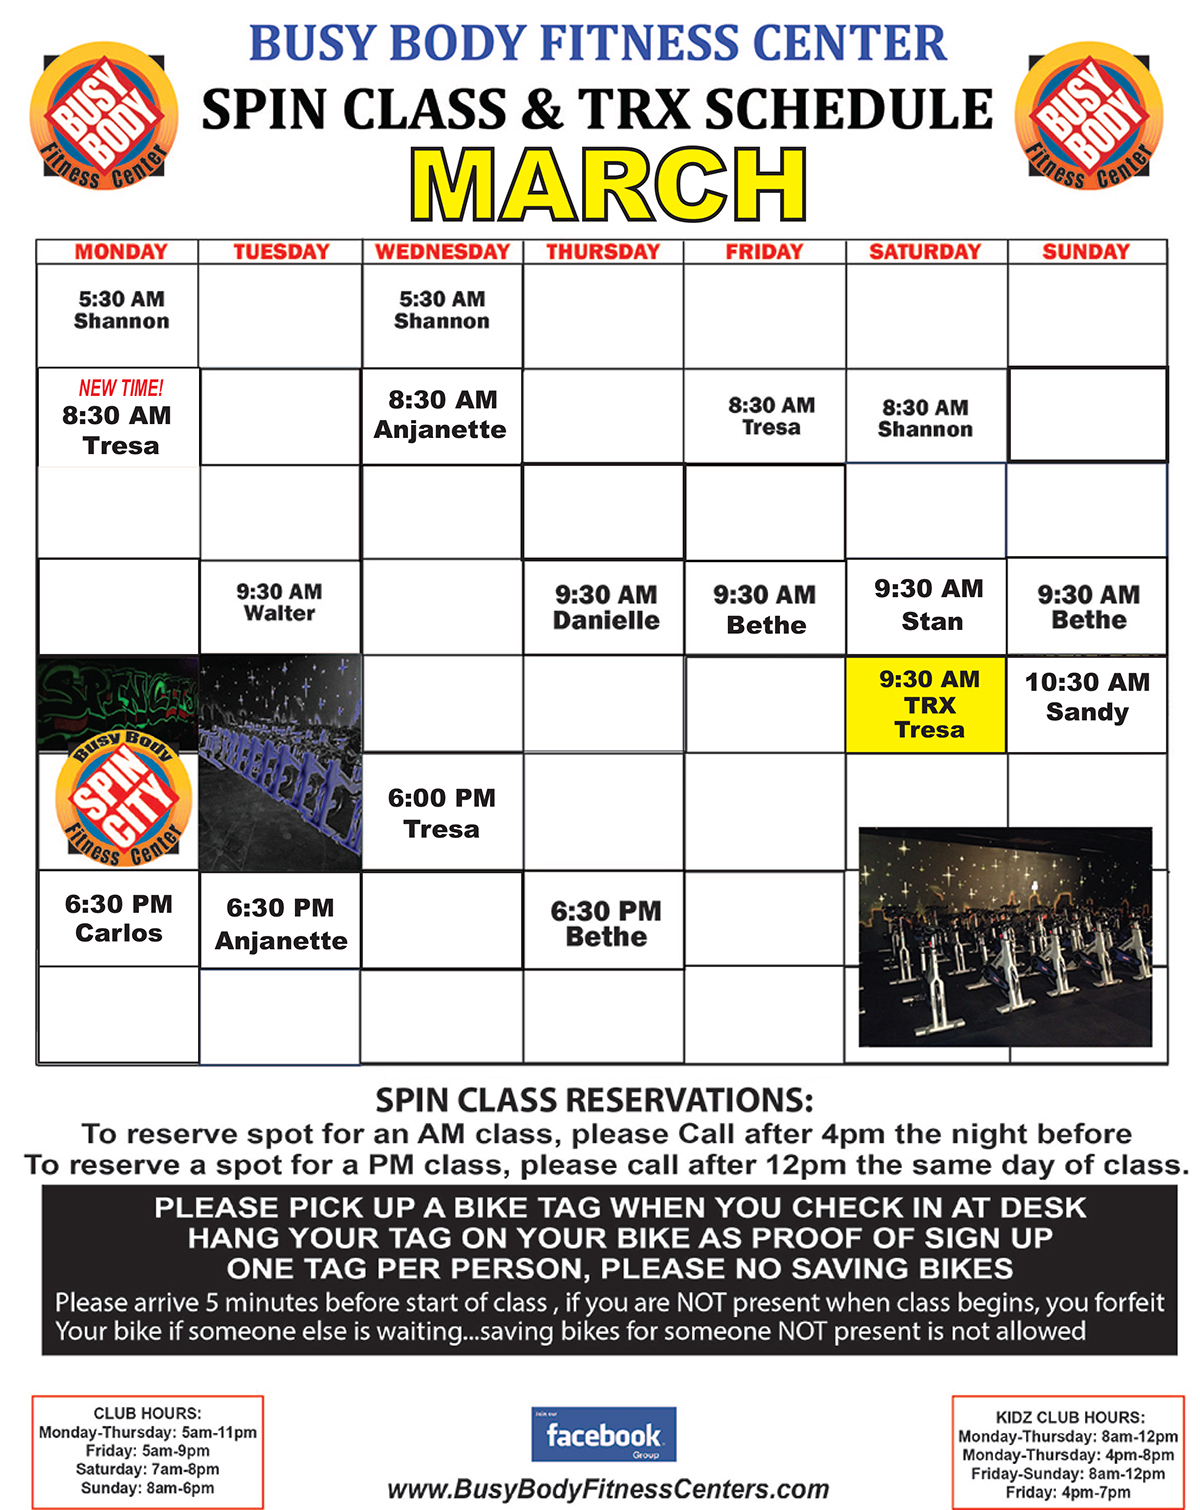 Busy Body Fitness Center West Boca Raton Spinning & TRX Class Schedule for March 2018